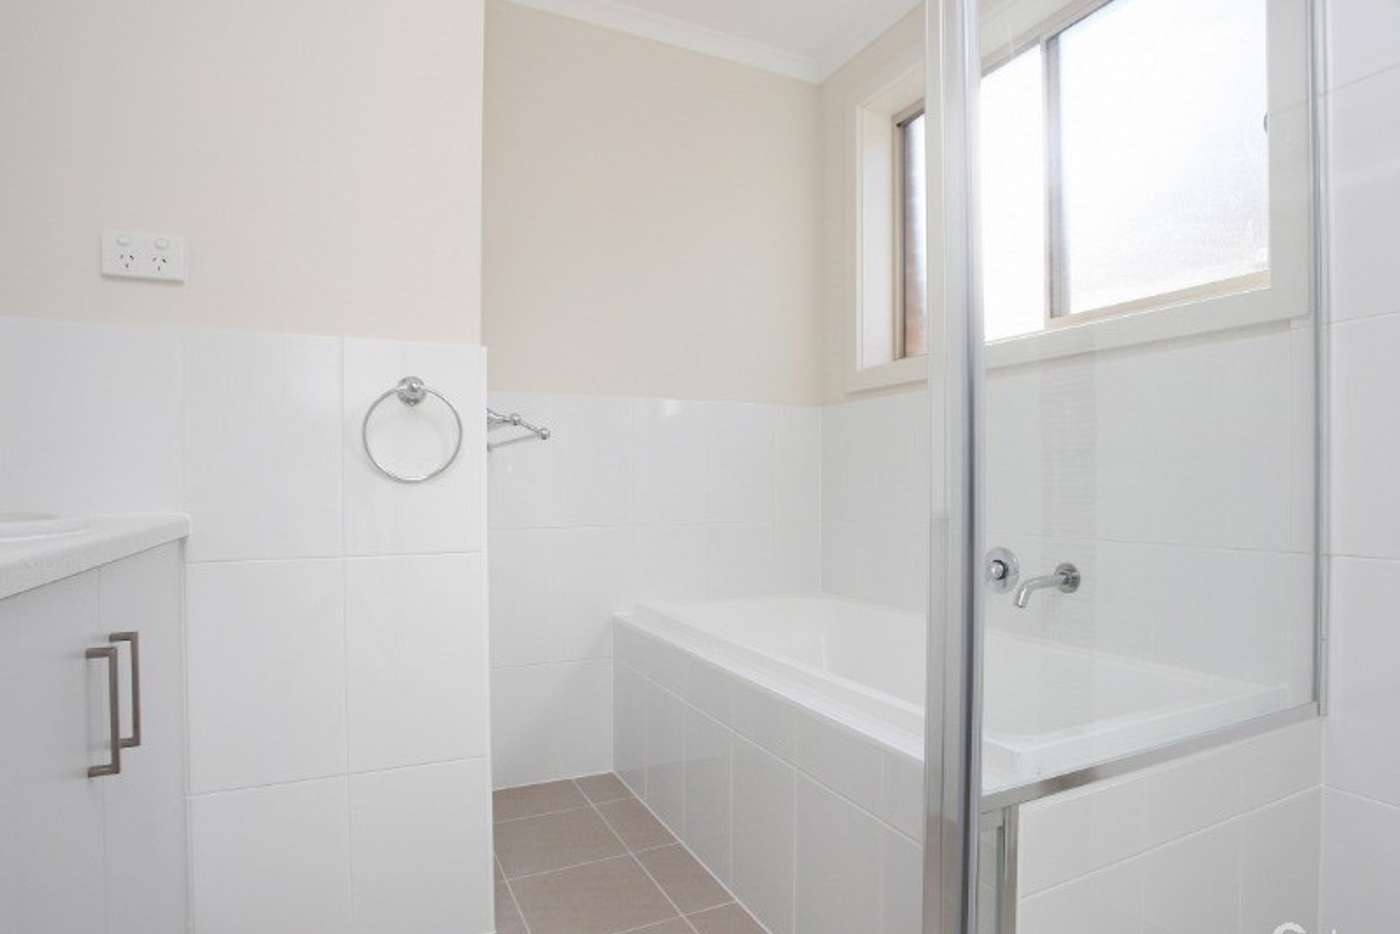 Seventh view of Homely house listing, 26 Bivone Court, Salisbury Downs SA 5108